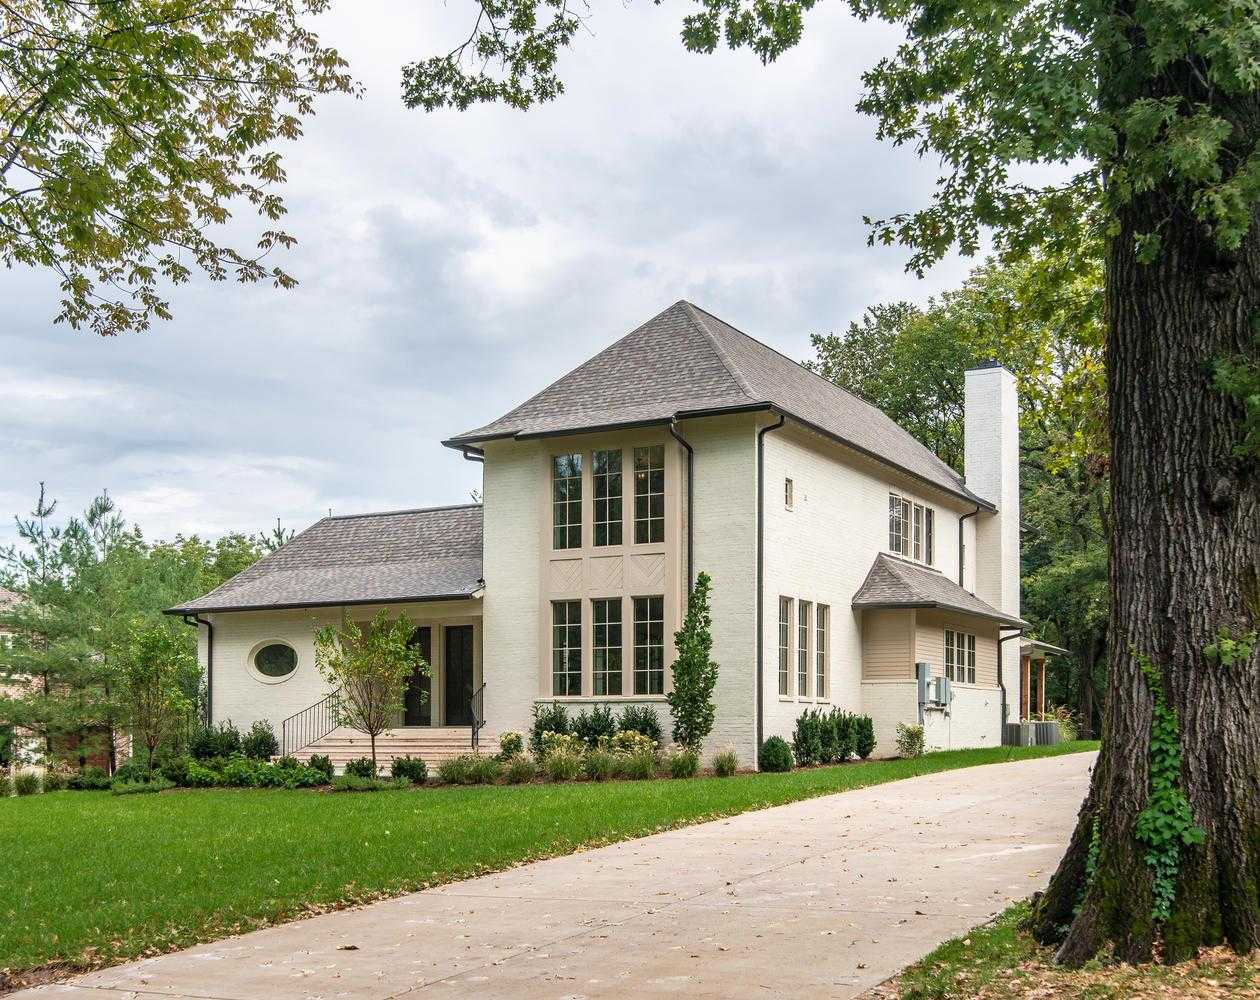 $1,999,000 - 5Br/6Ba -  for Sale in Green Hills, Nashville